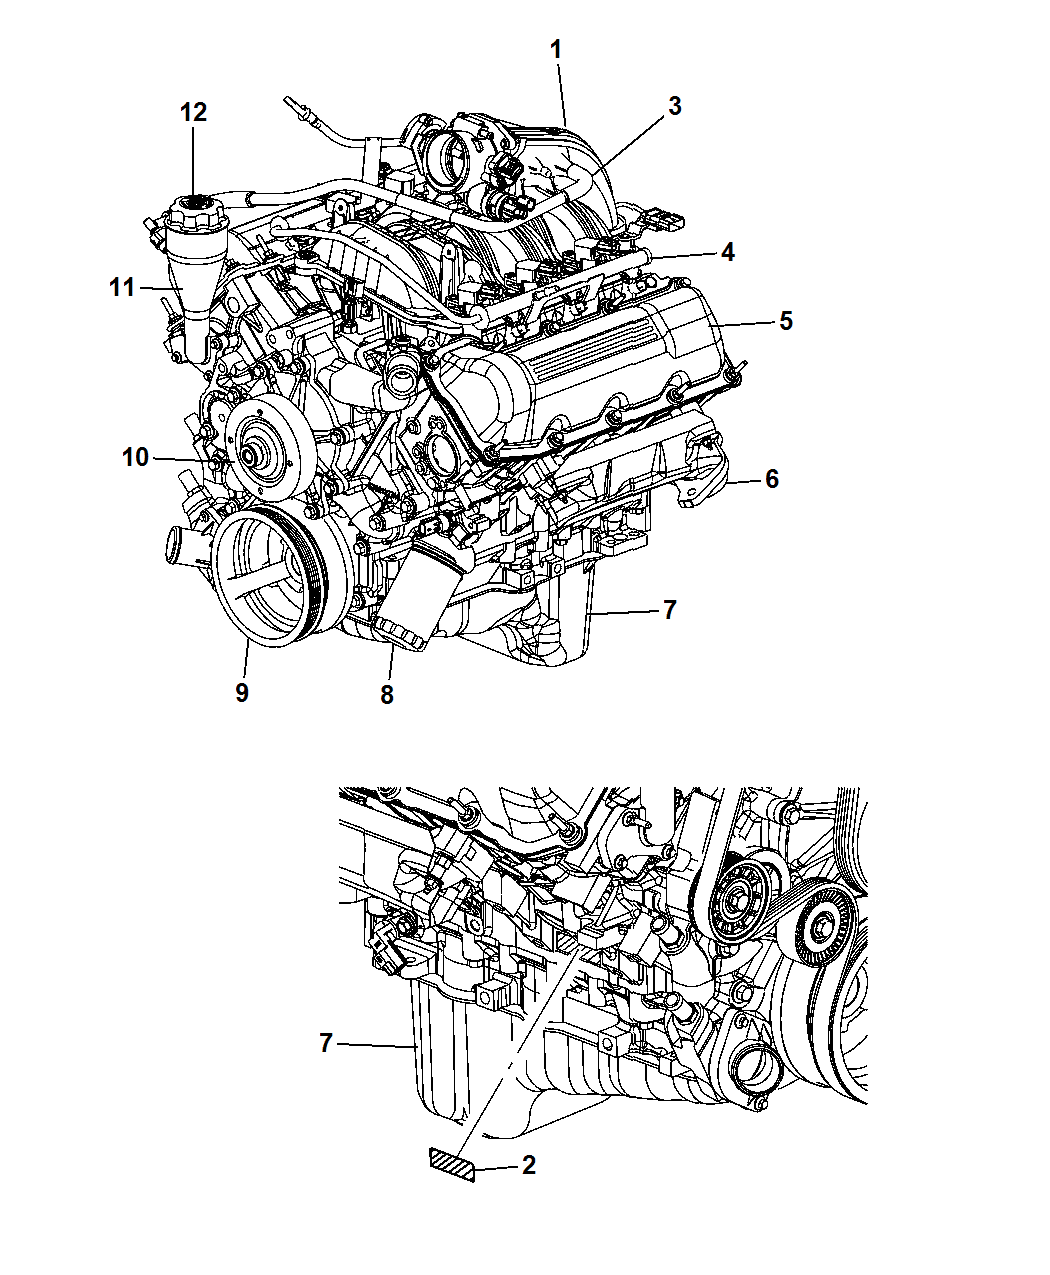 jeep liberty 3.7 engine diagram - database wiring mark god-worry -  god-worry.vascocorradelli.it  god-worry.vascocorradelli.it